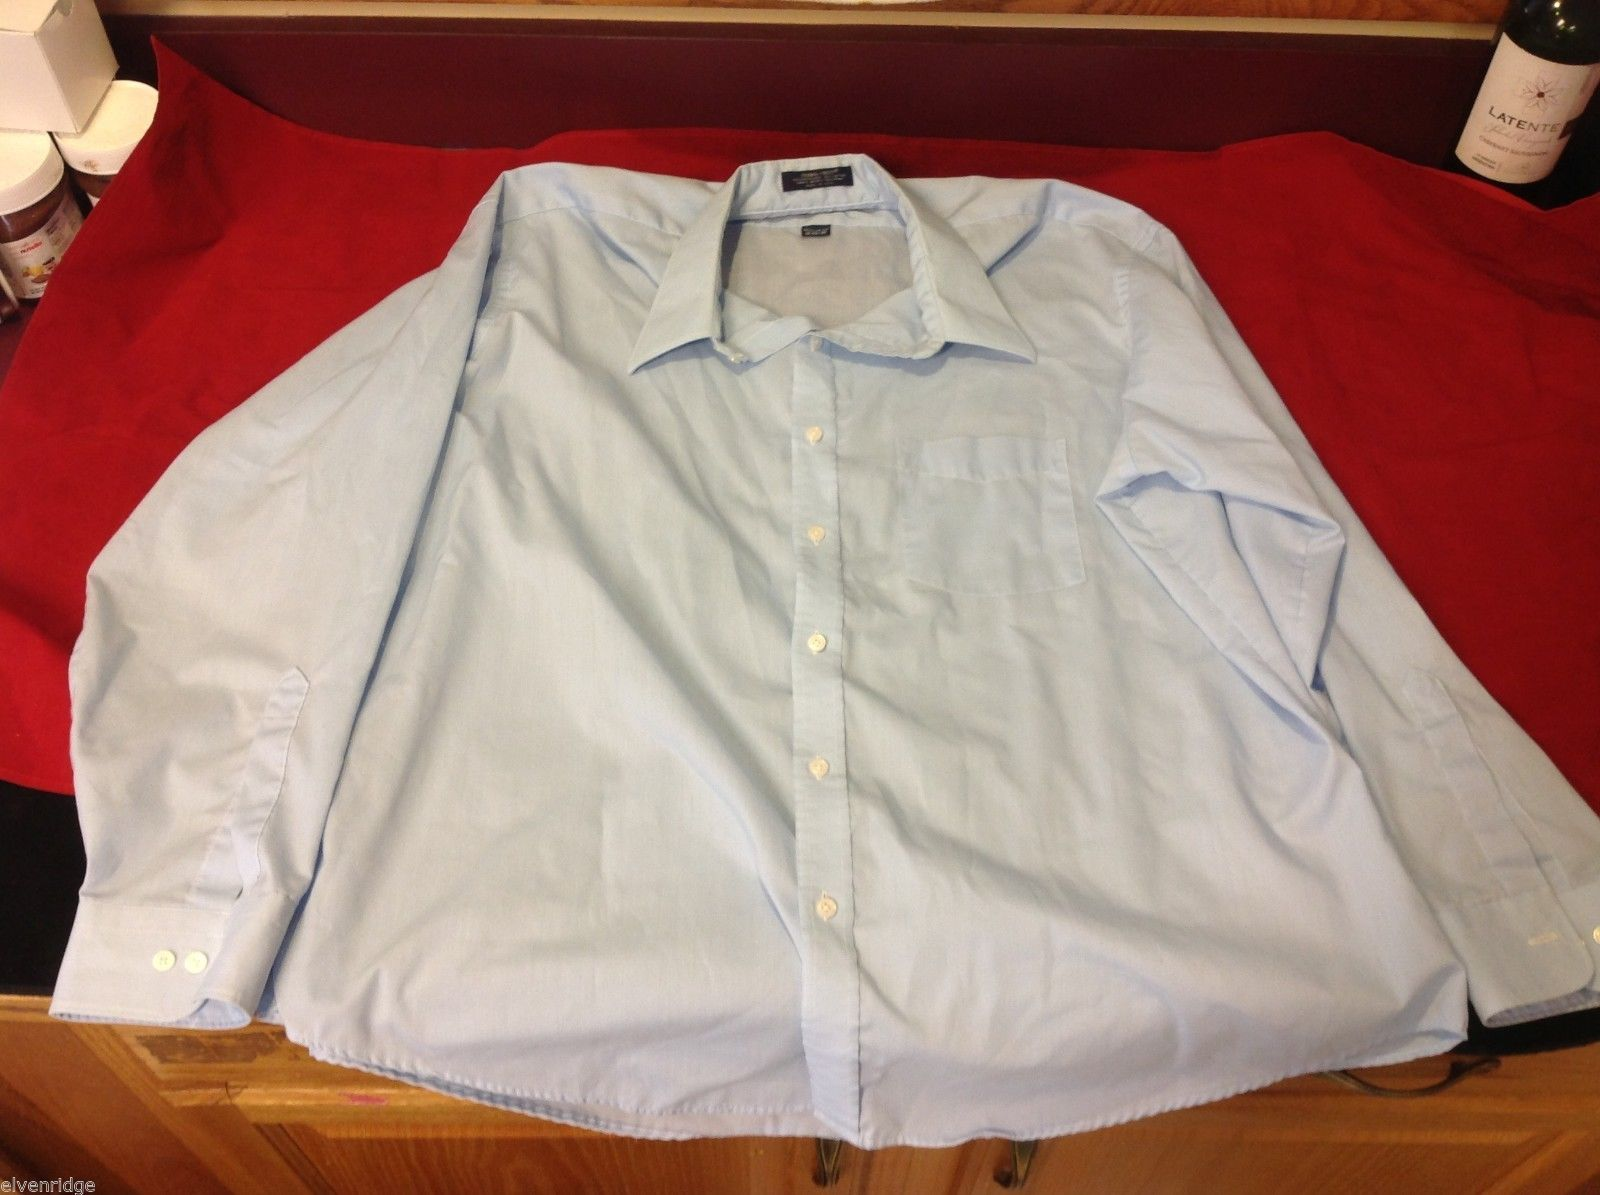 stratum light blue dress shirt size 18 - 34/35